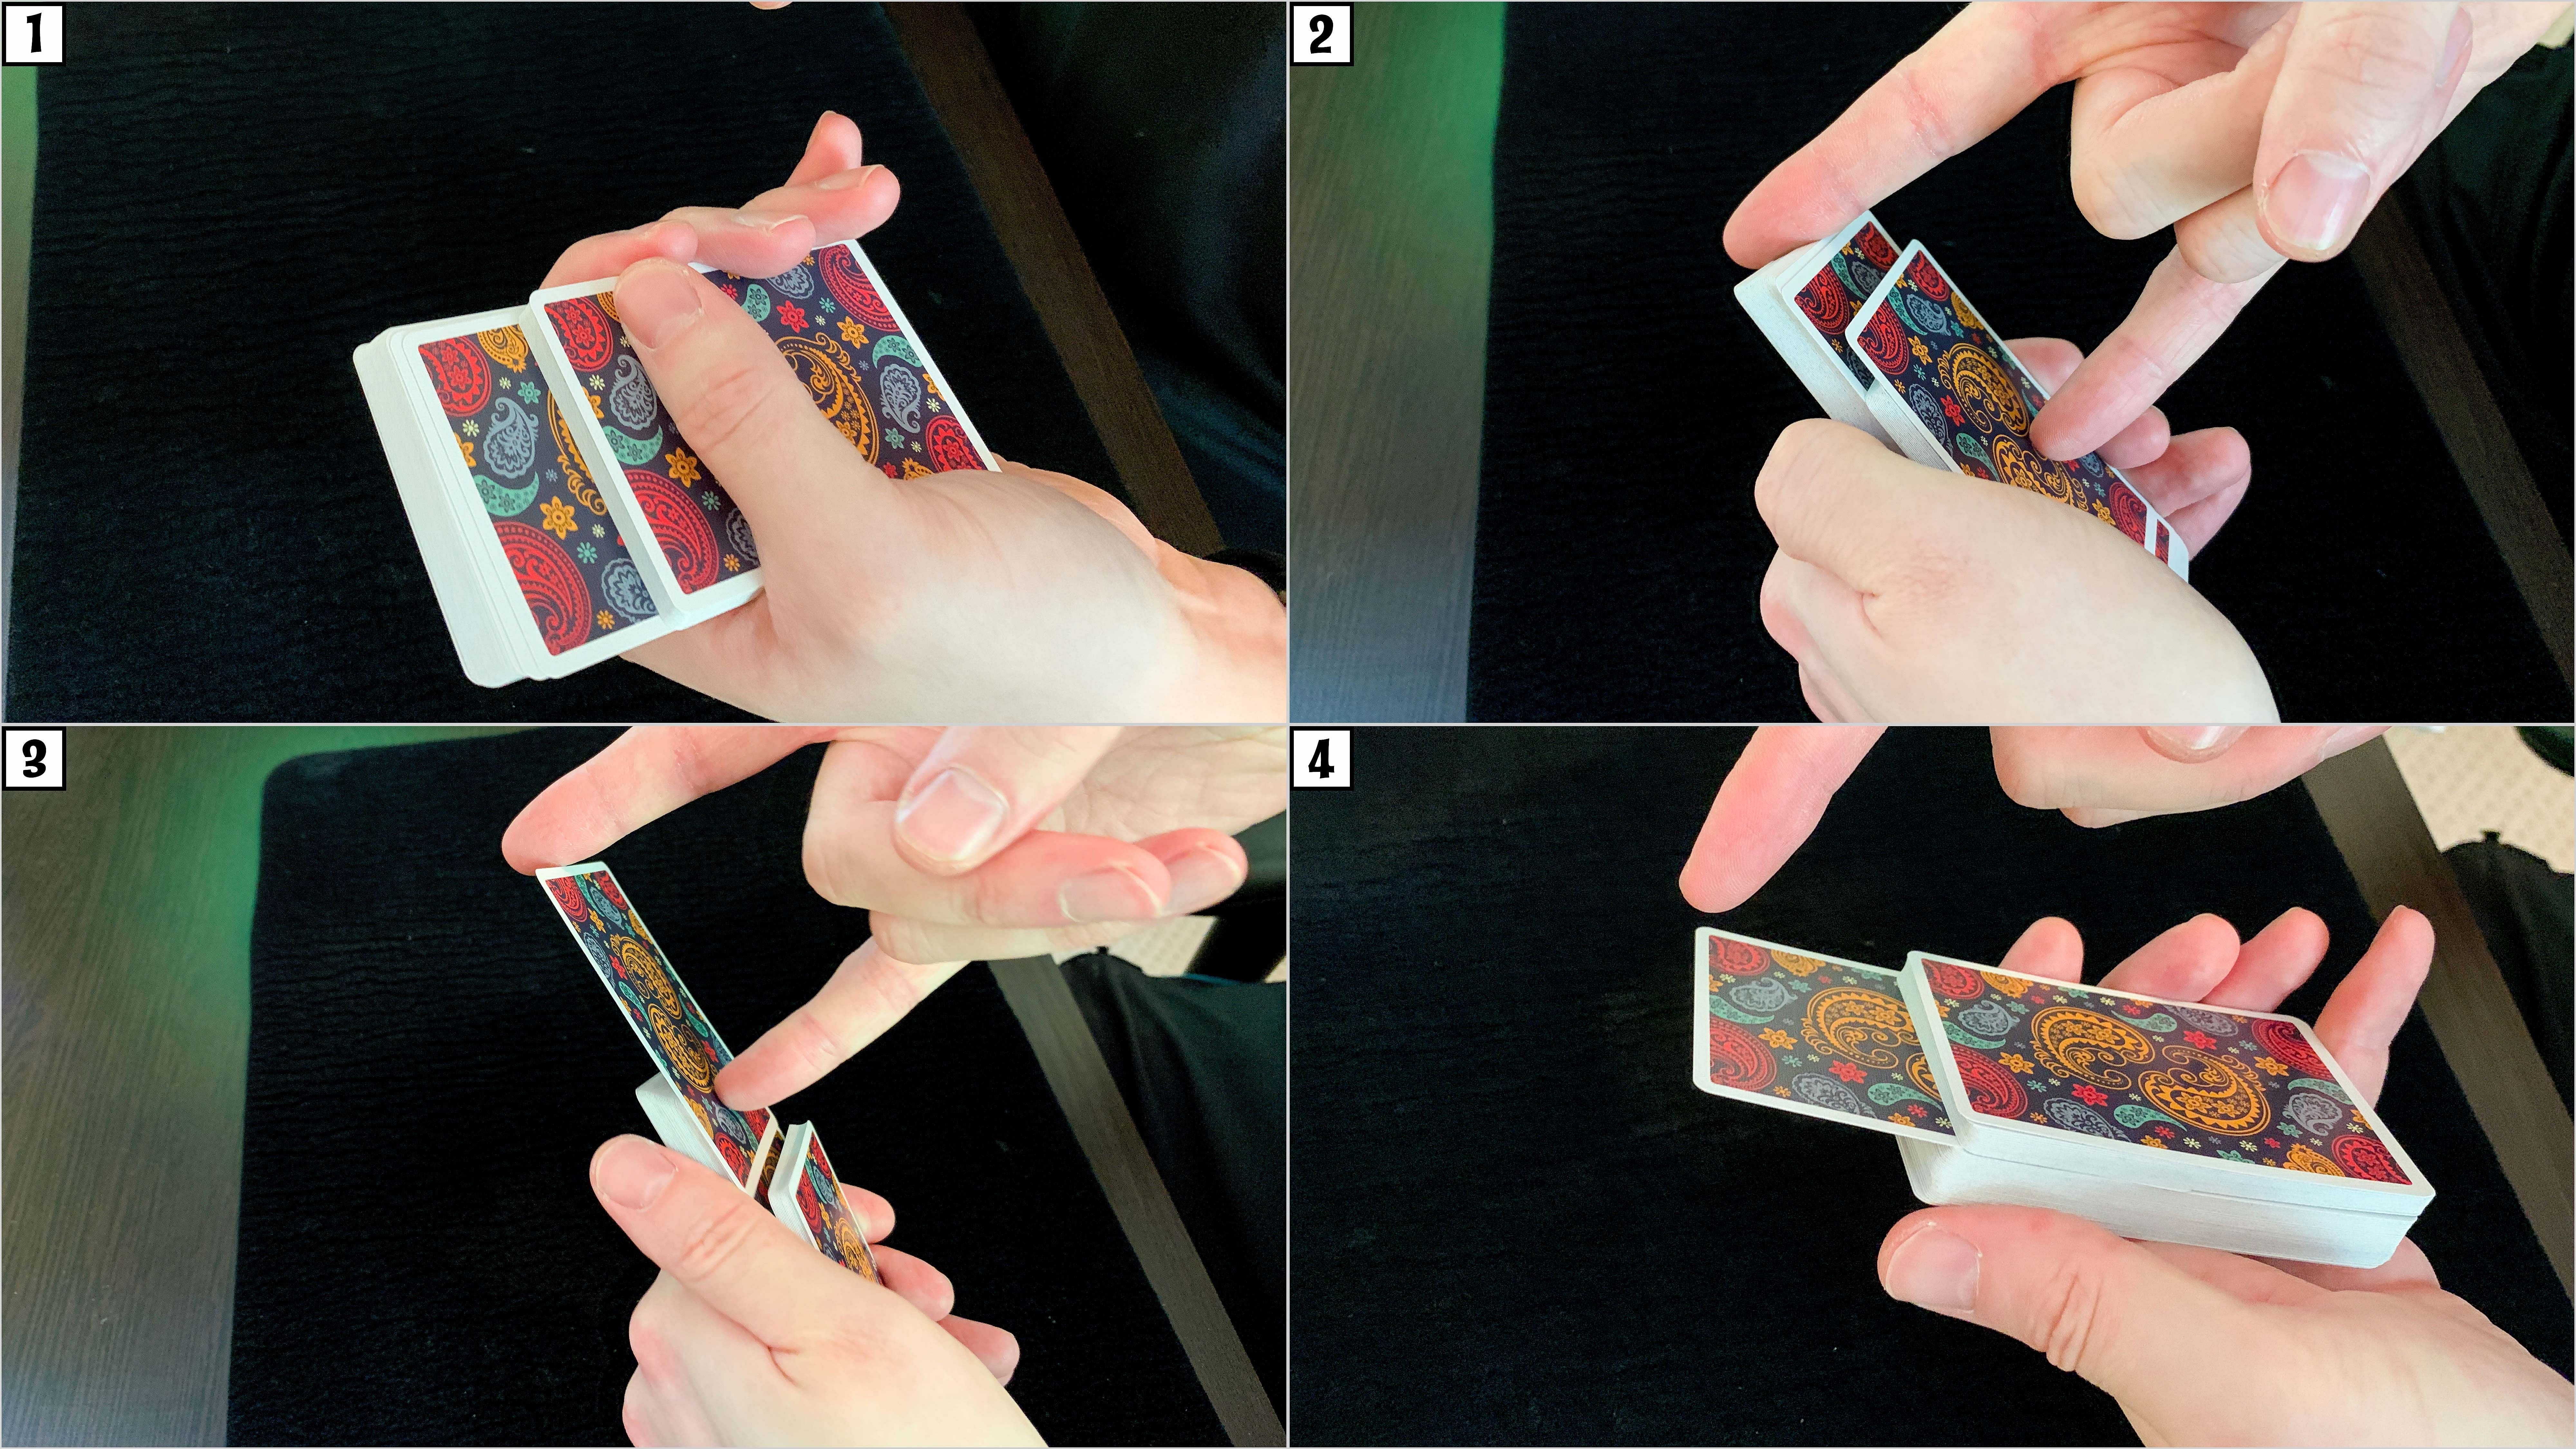 A playing card rises out of the middle of a deck of cards as part of the classic rising card trick